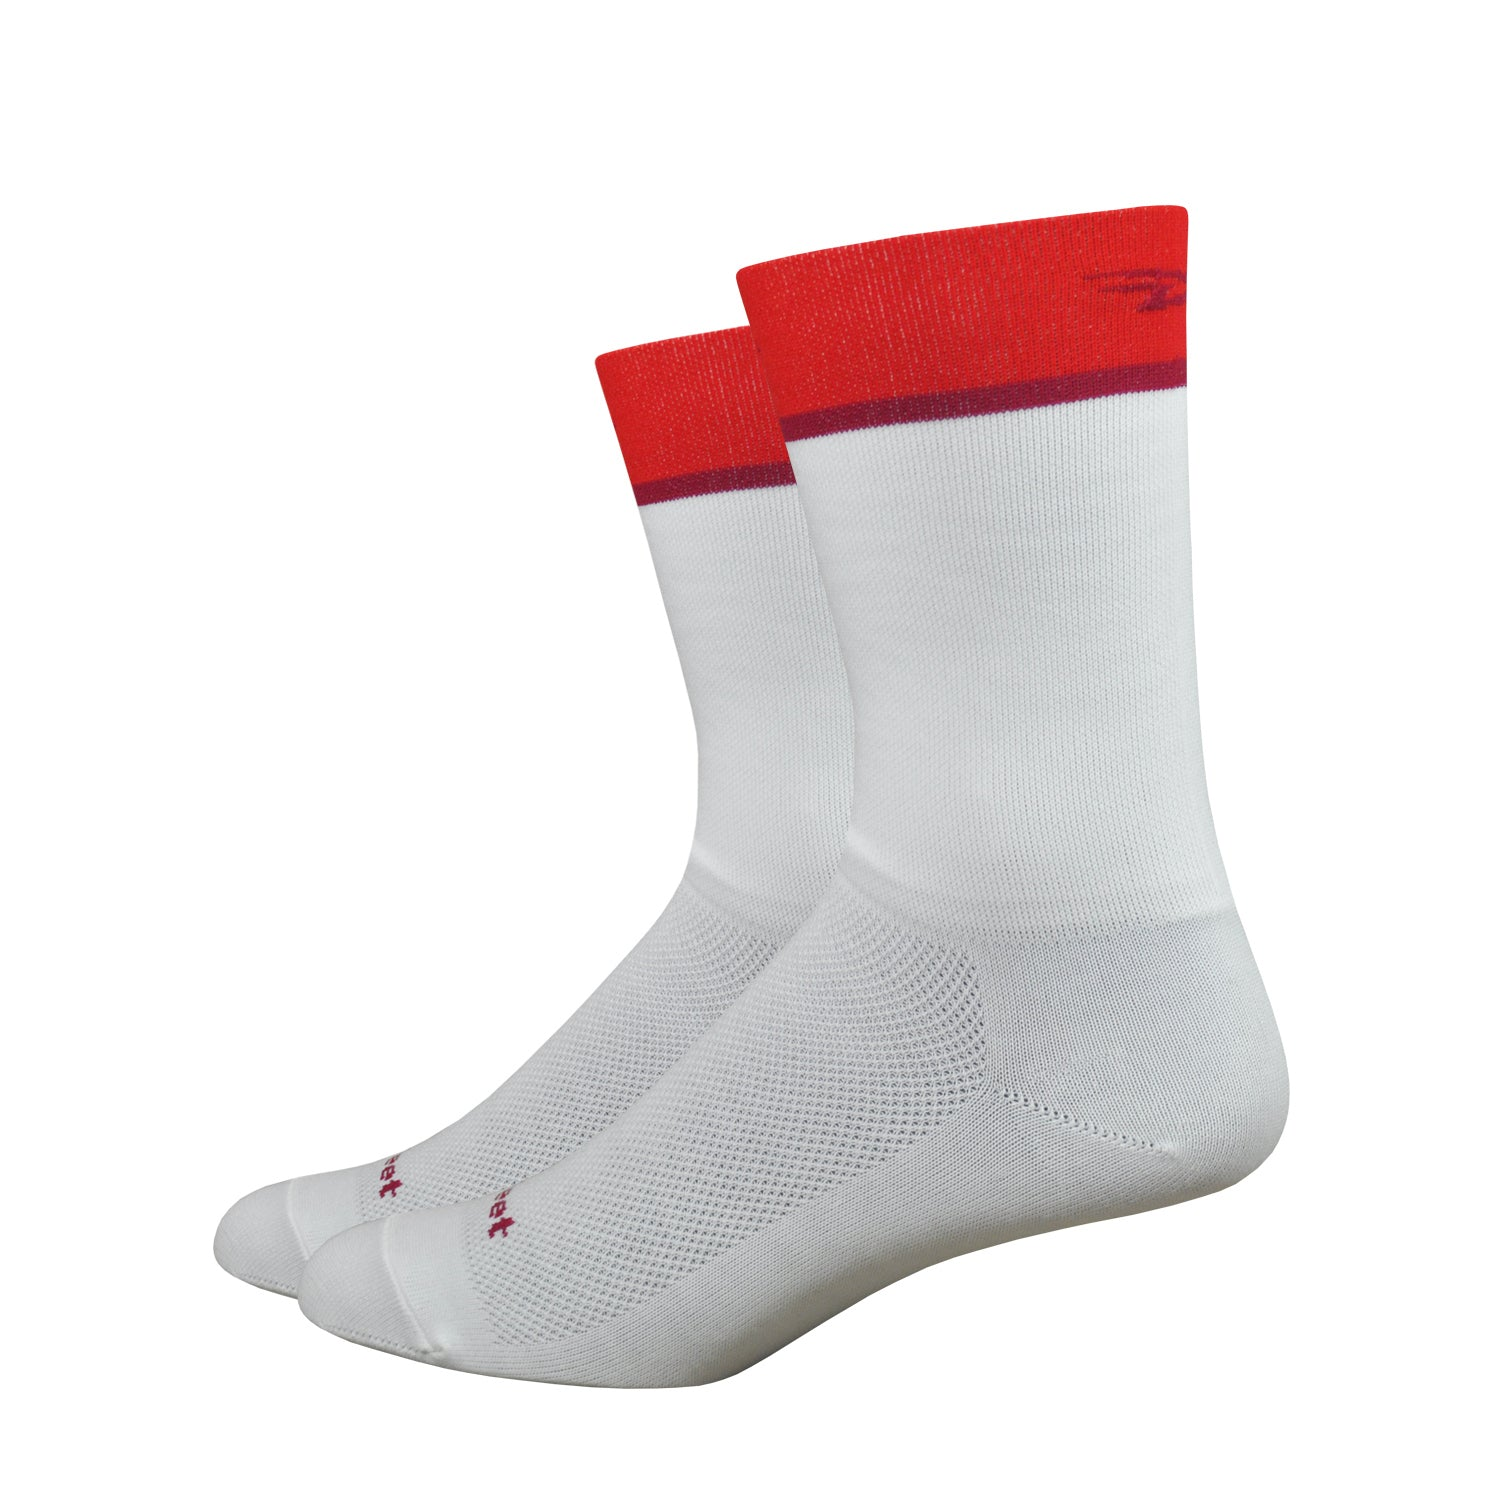 "Aireator 6"" Team DeFeet (White/Red)"